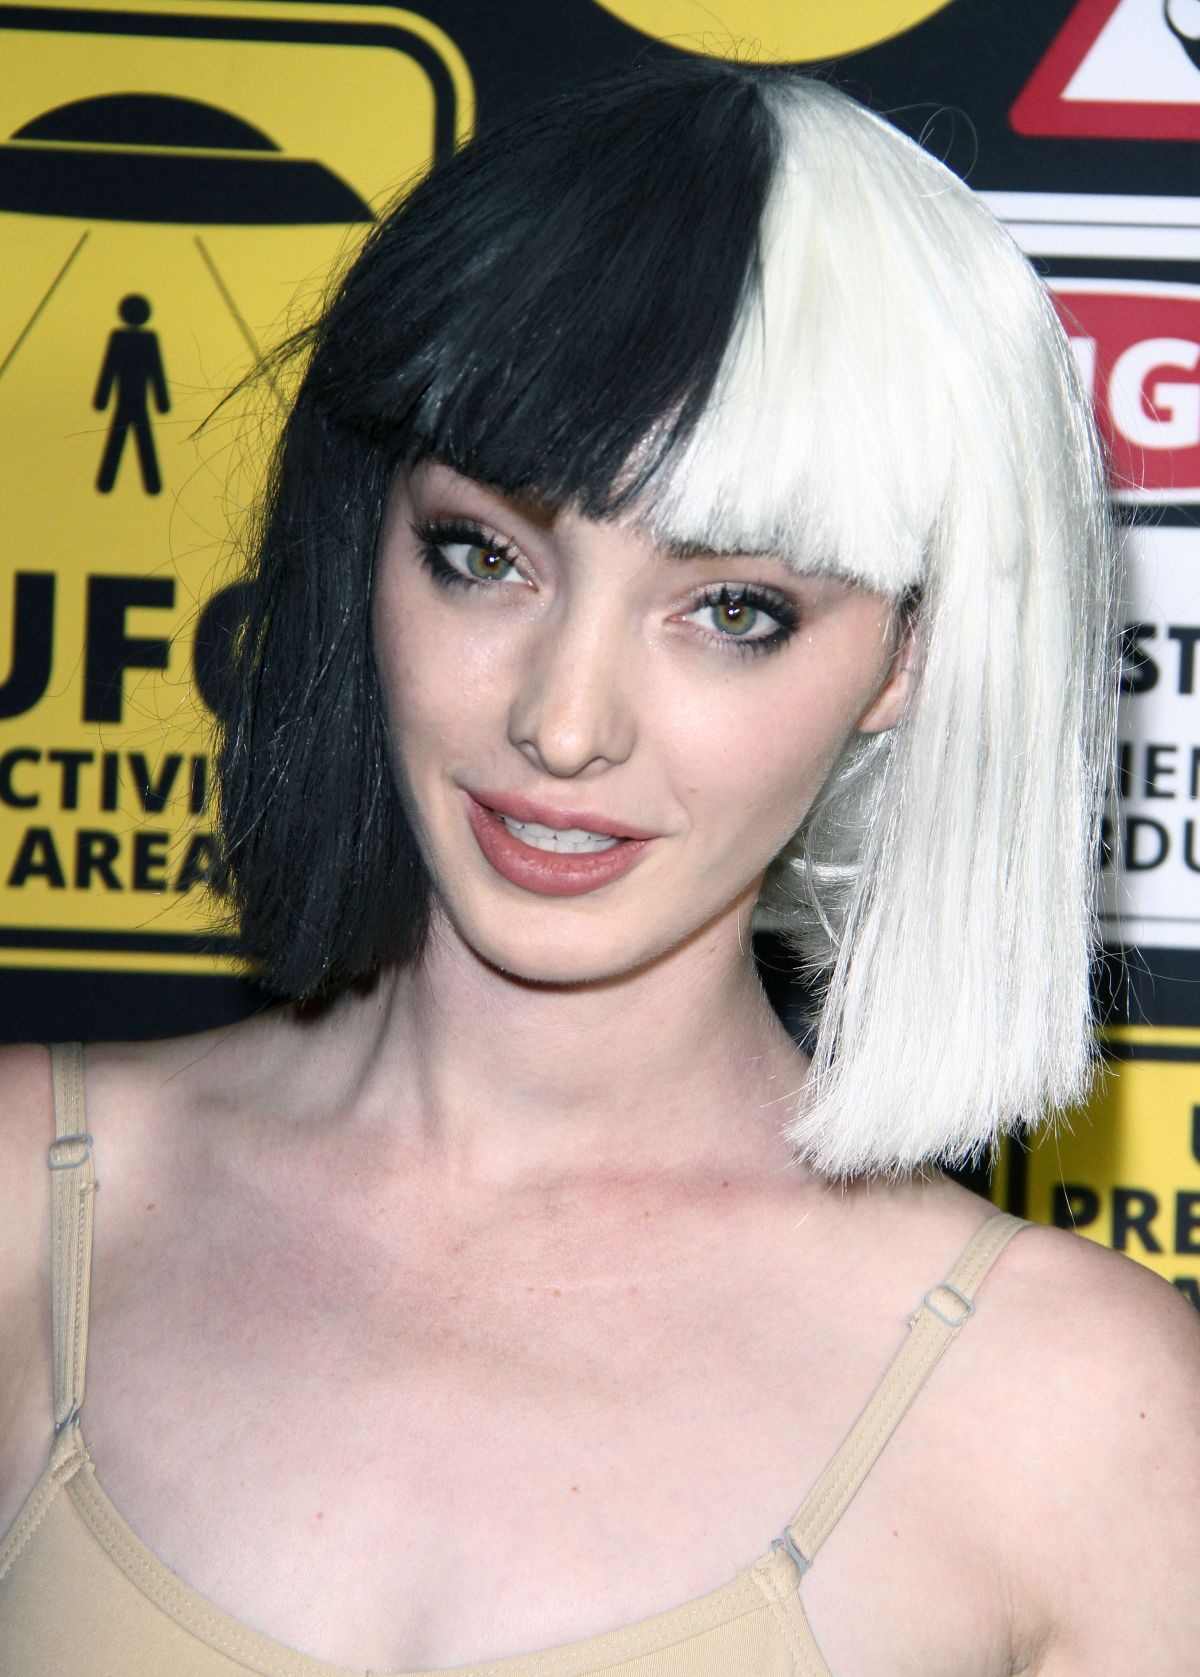 EMMA DUMONT at Just Jared's Annual Halloween Party in Los Angeles 10/30/2016